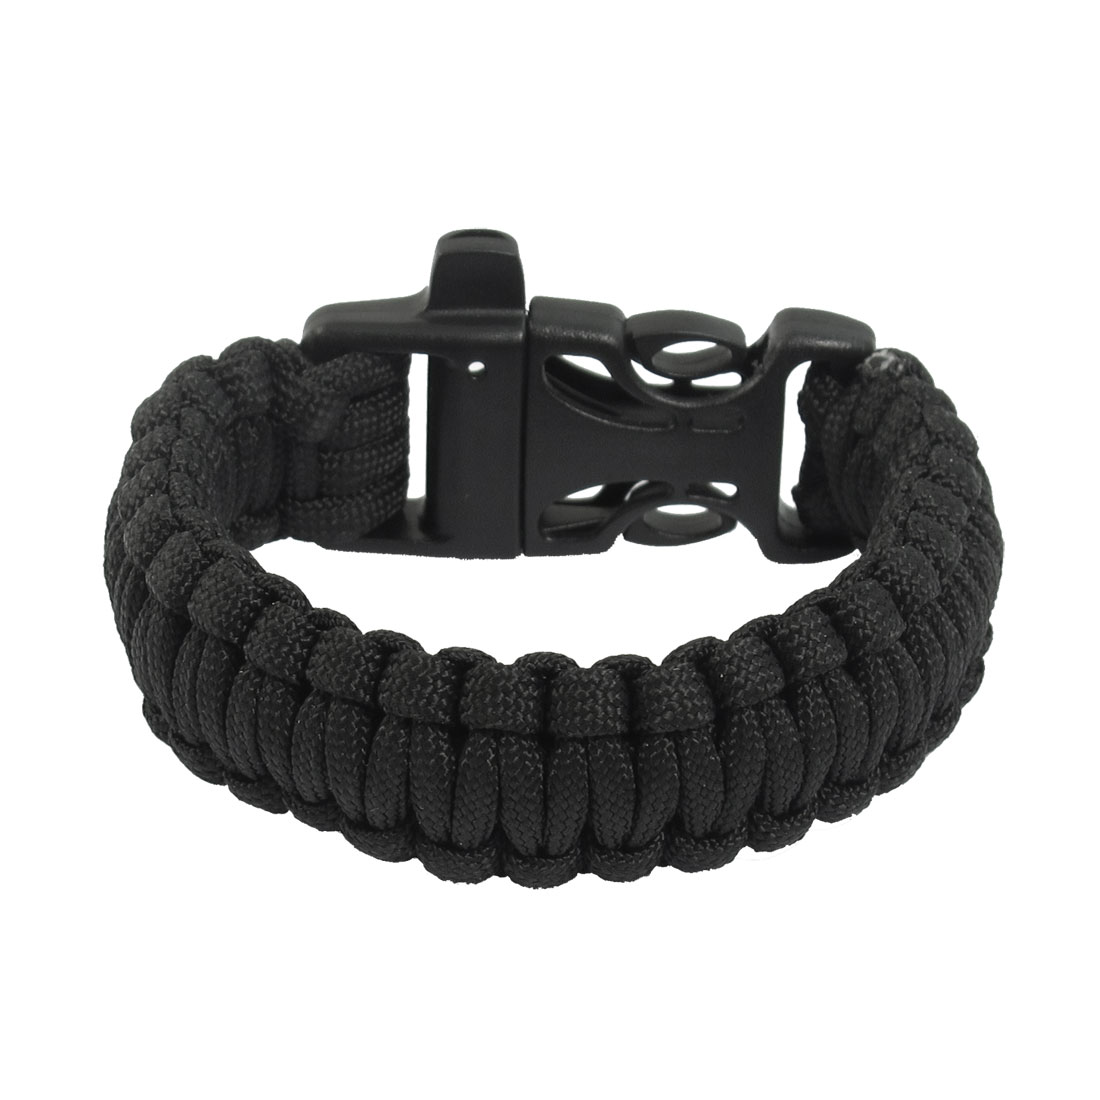 Daily Life Decor Plastic Buckle Cobra Weave Black Nylon Survival Bracelet